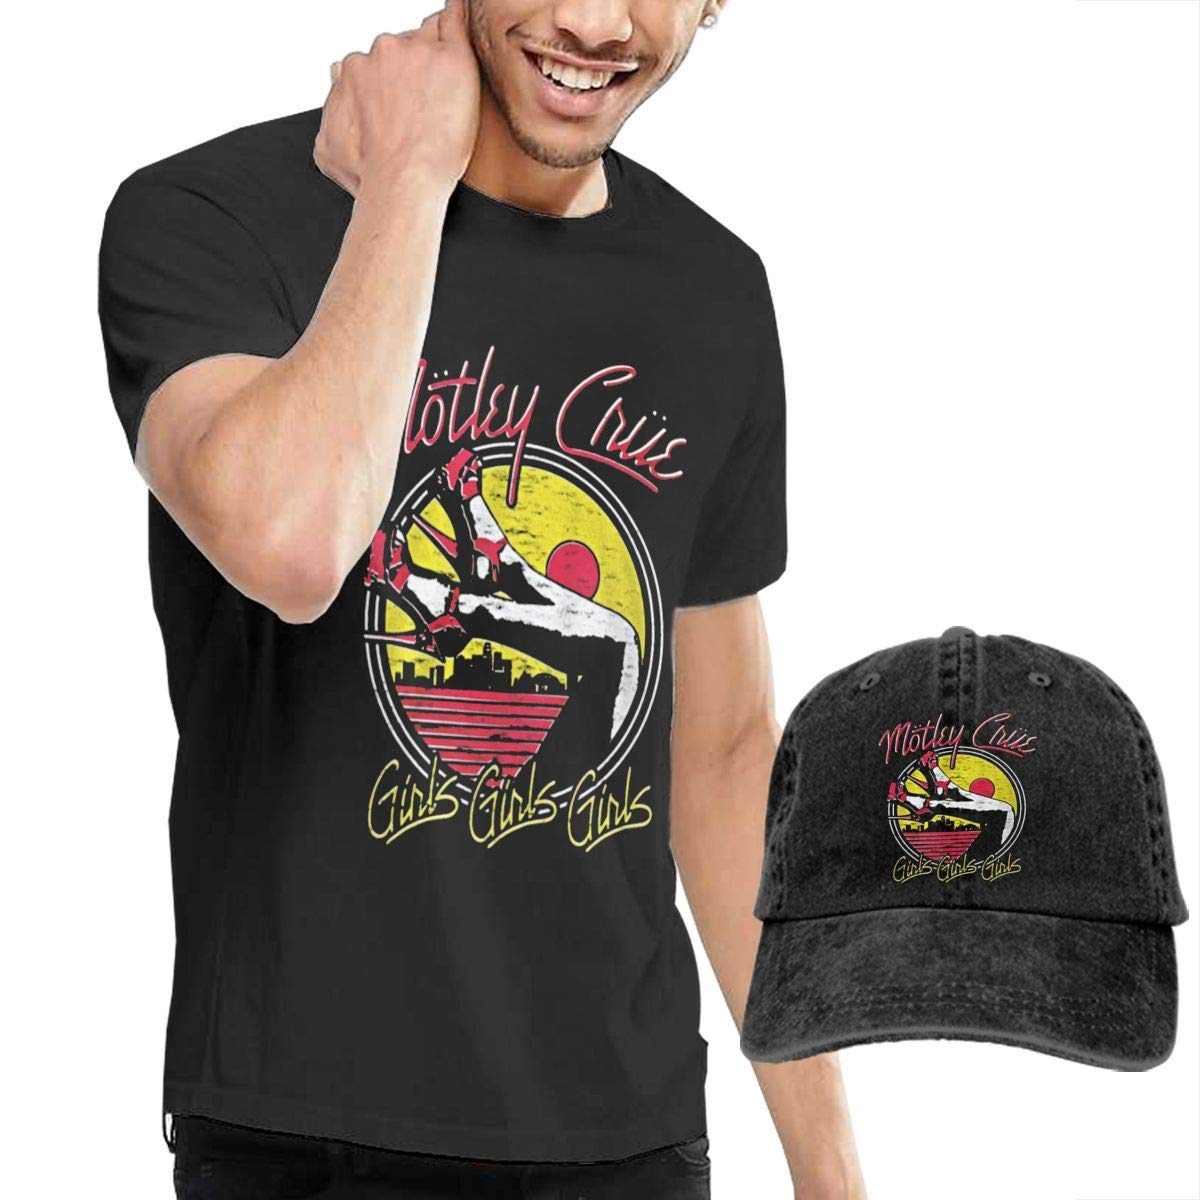 Hfusih.fhs6f789 Motley Crue Adult Cap Adjustable Cowboys Hats Baseball Cap M Black